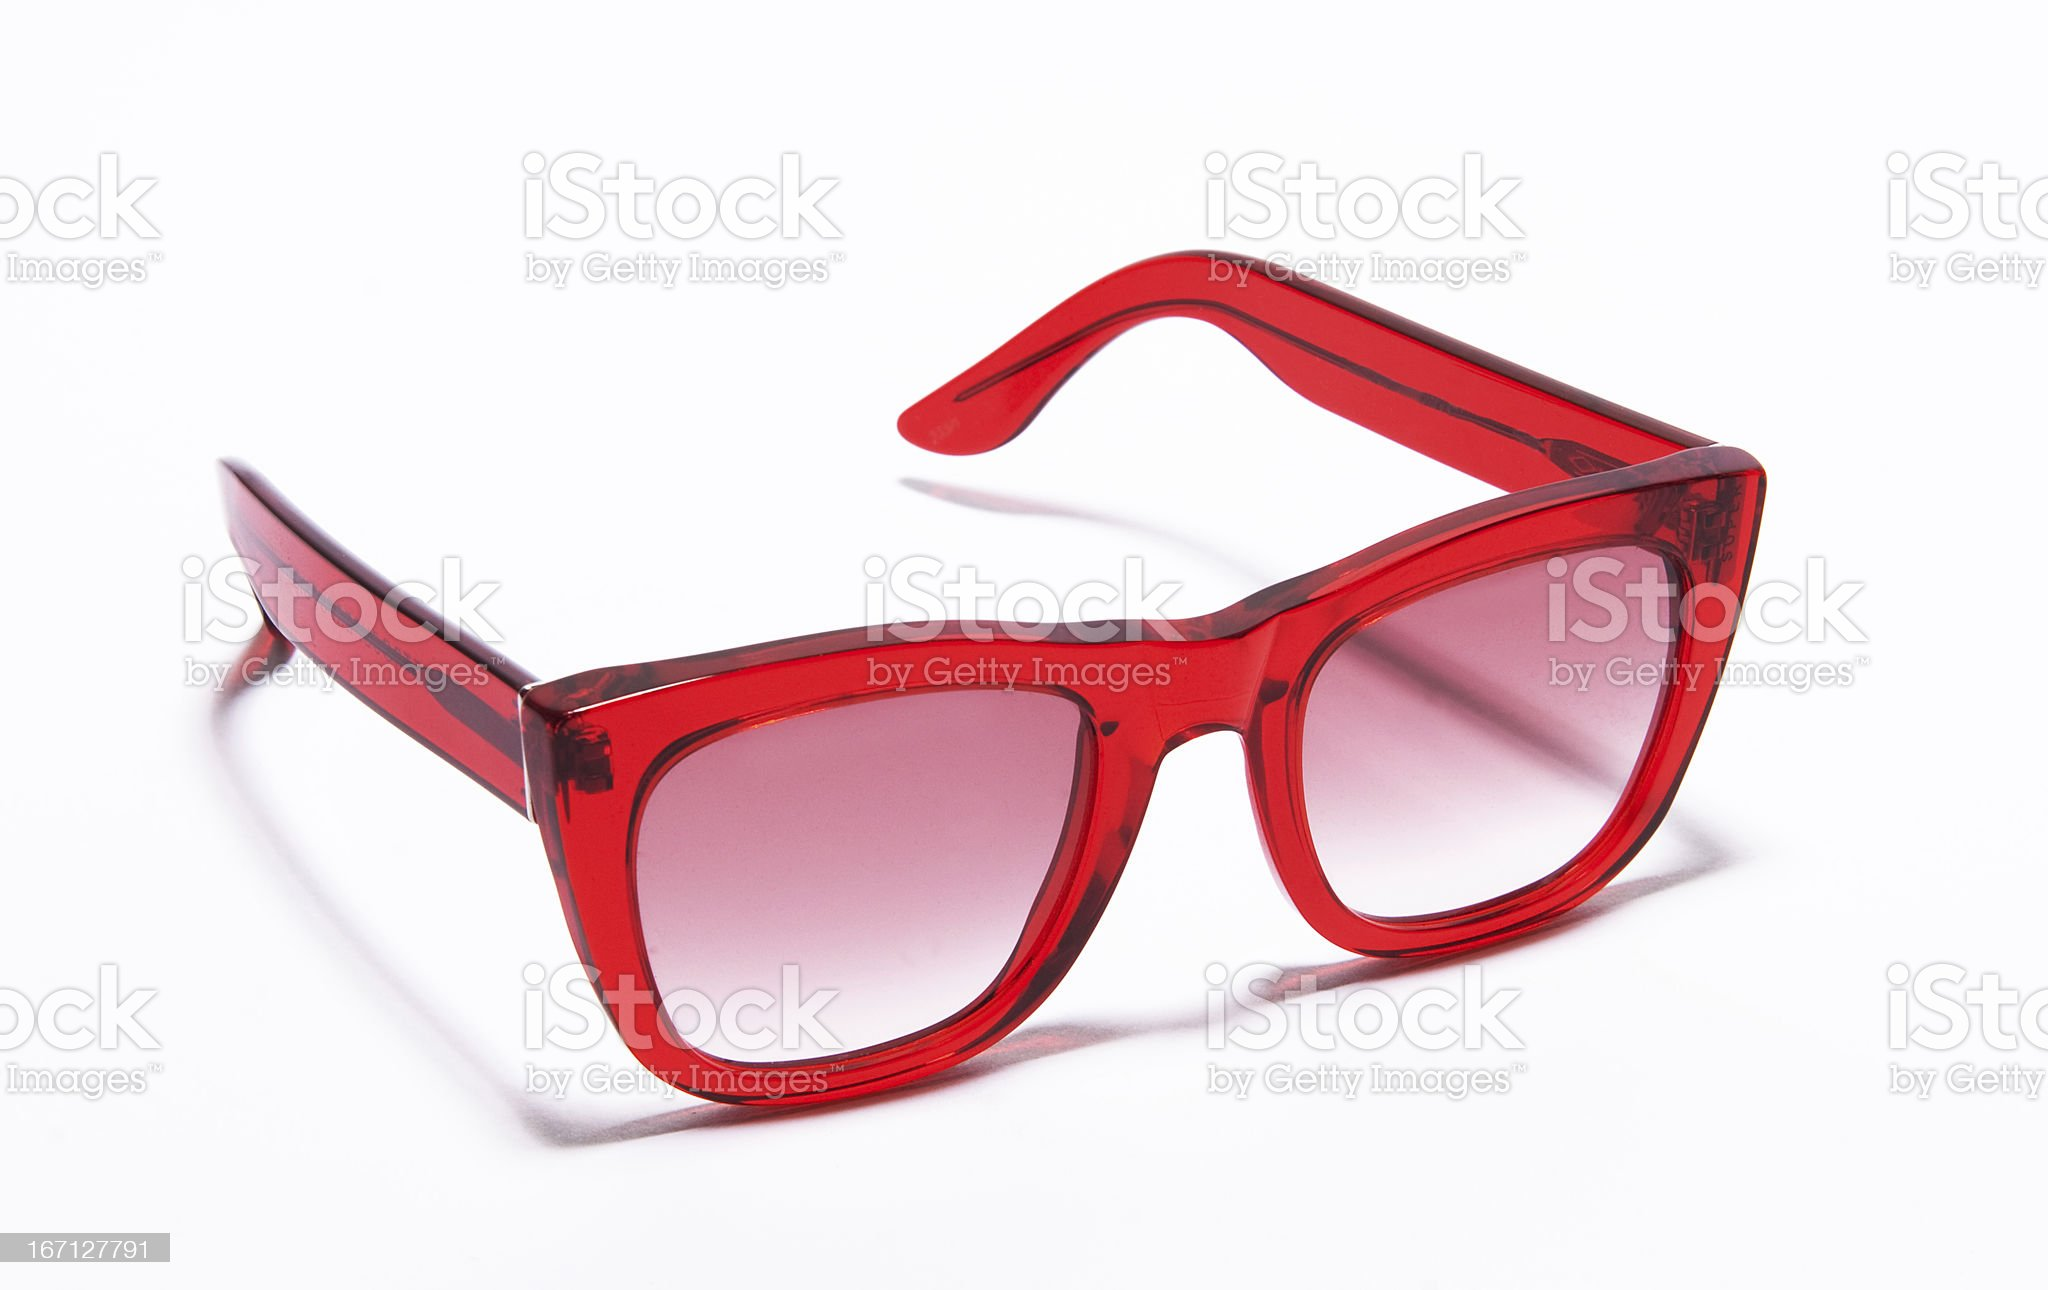 modern and colorful sunglasses isolated on white background royalty-free stock photo